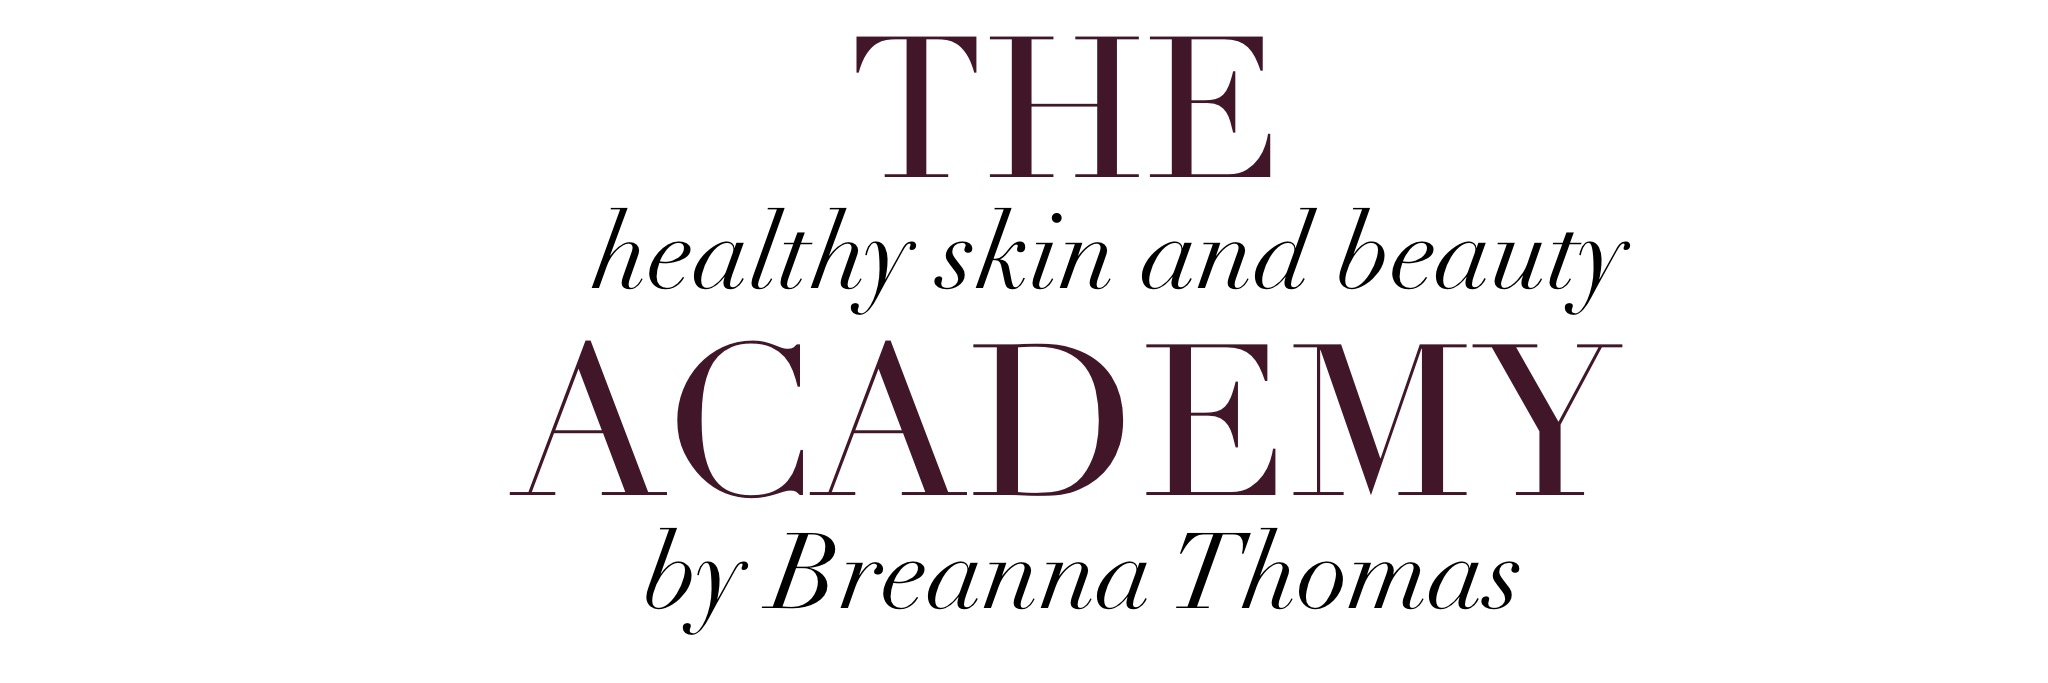 the-healthy-skin-and-beauty-academy-logo.jpg